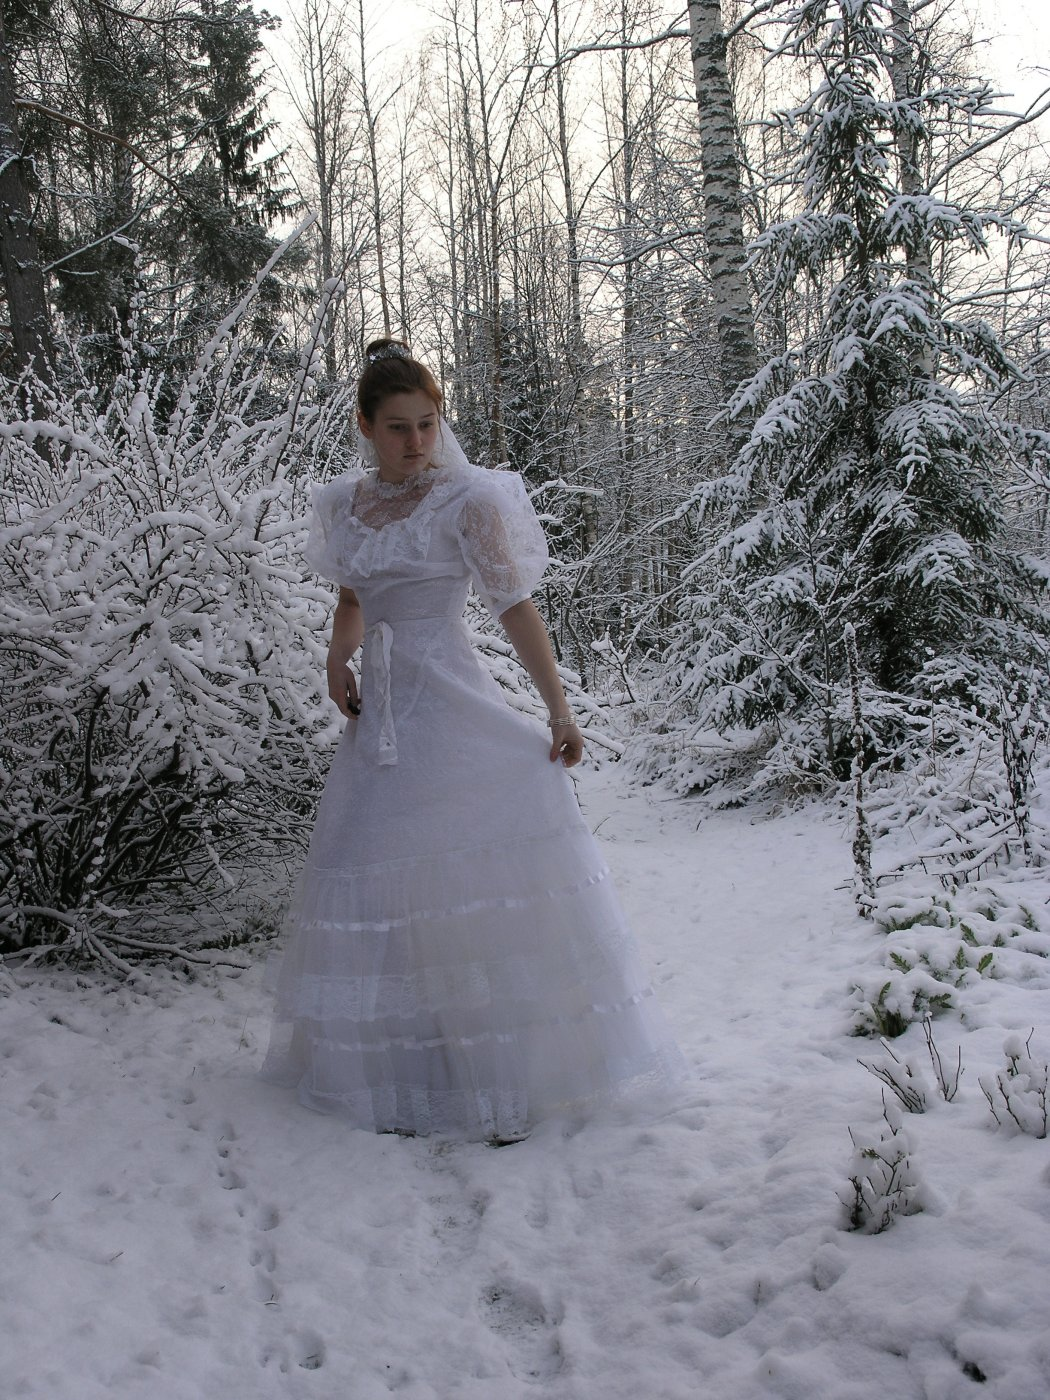 Bride in the snow 1 by Eirian-stock